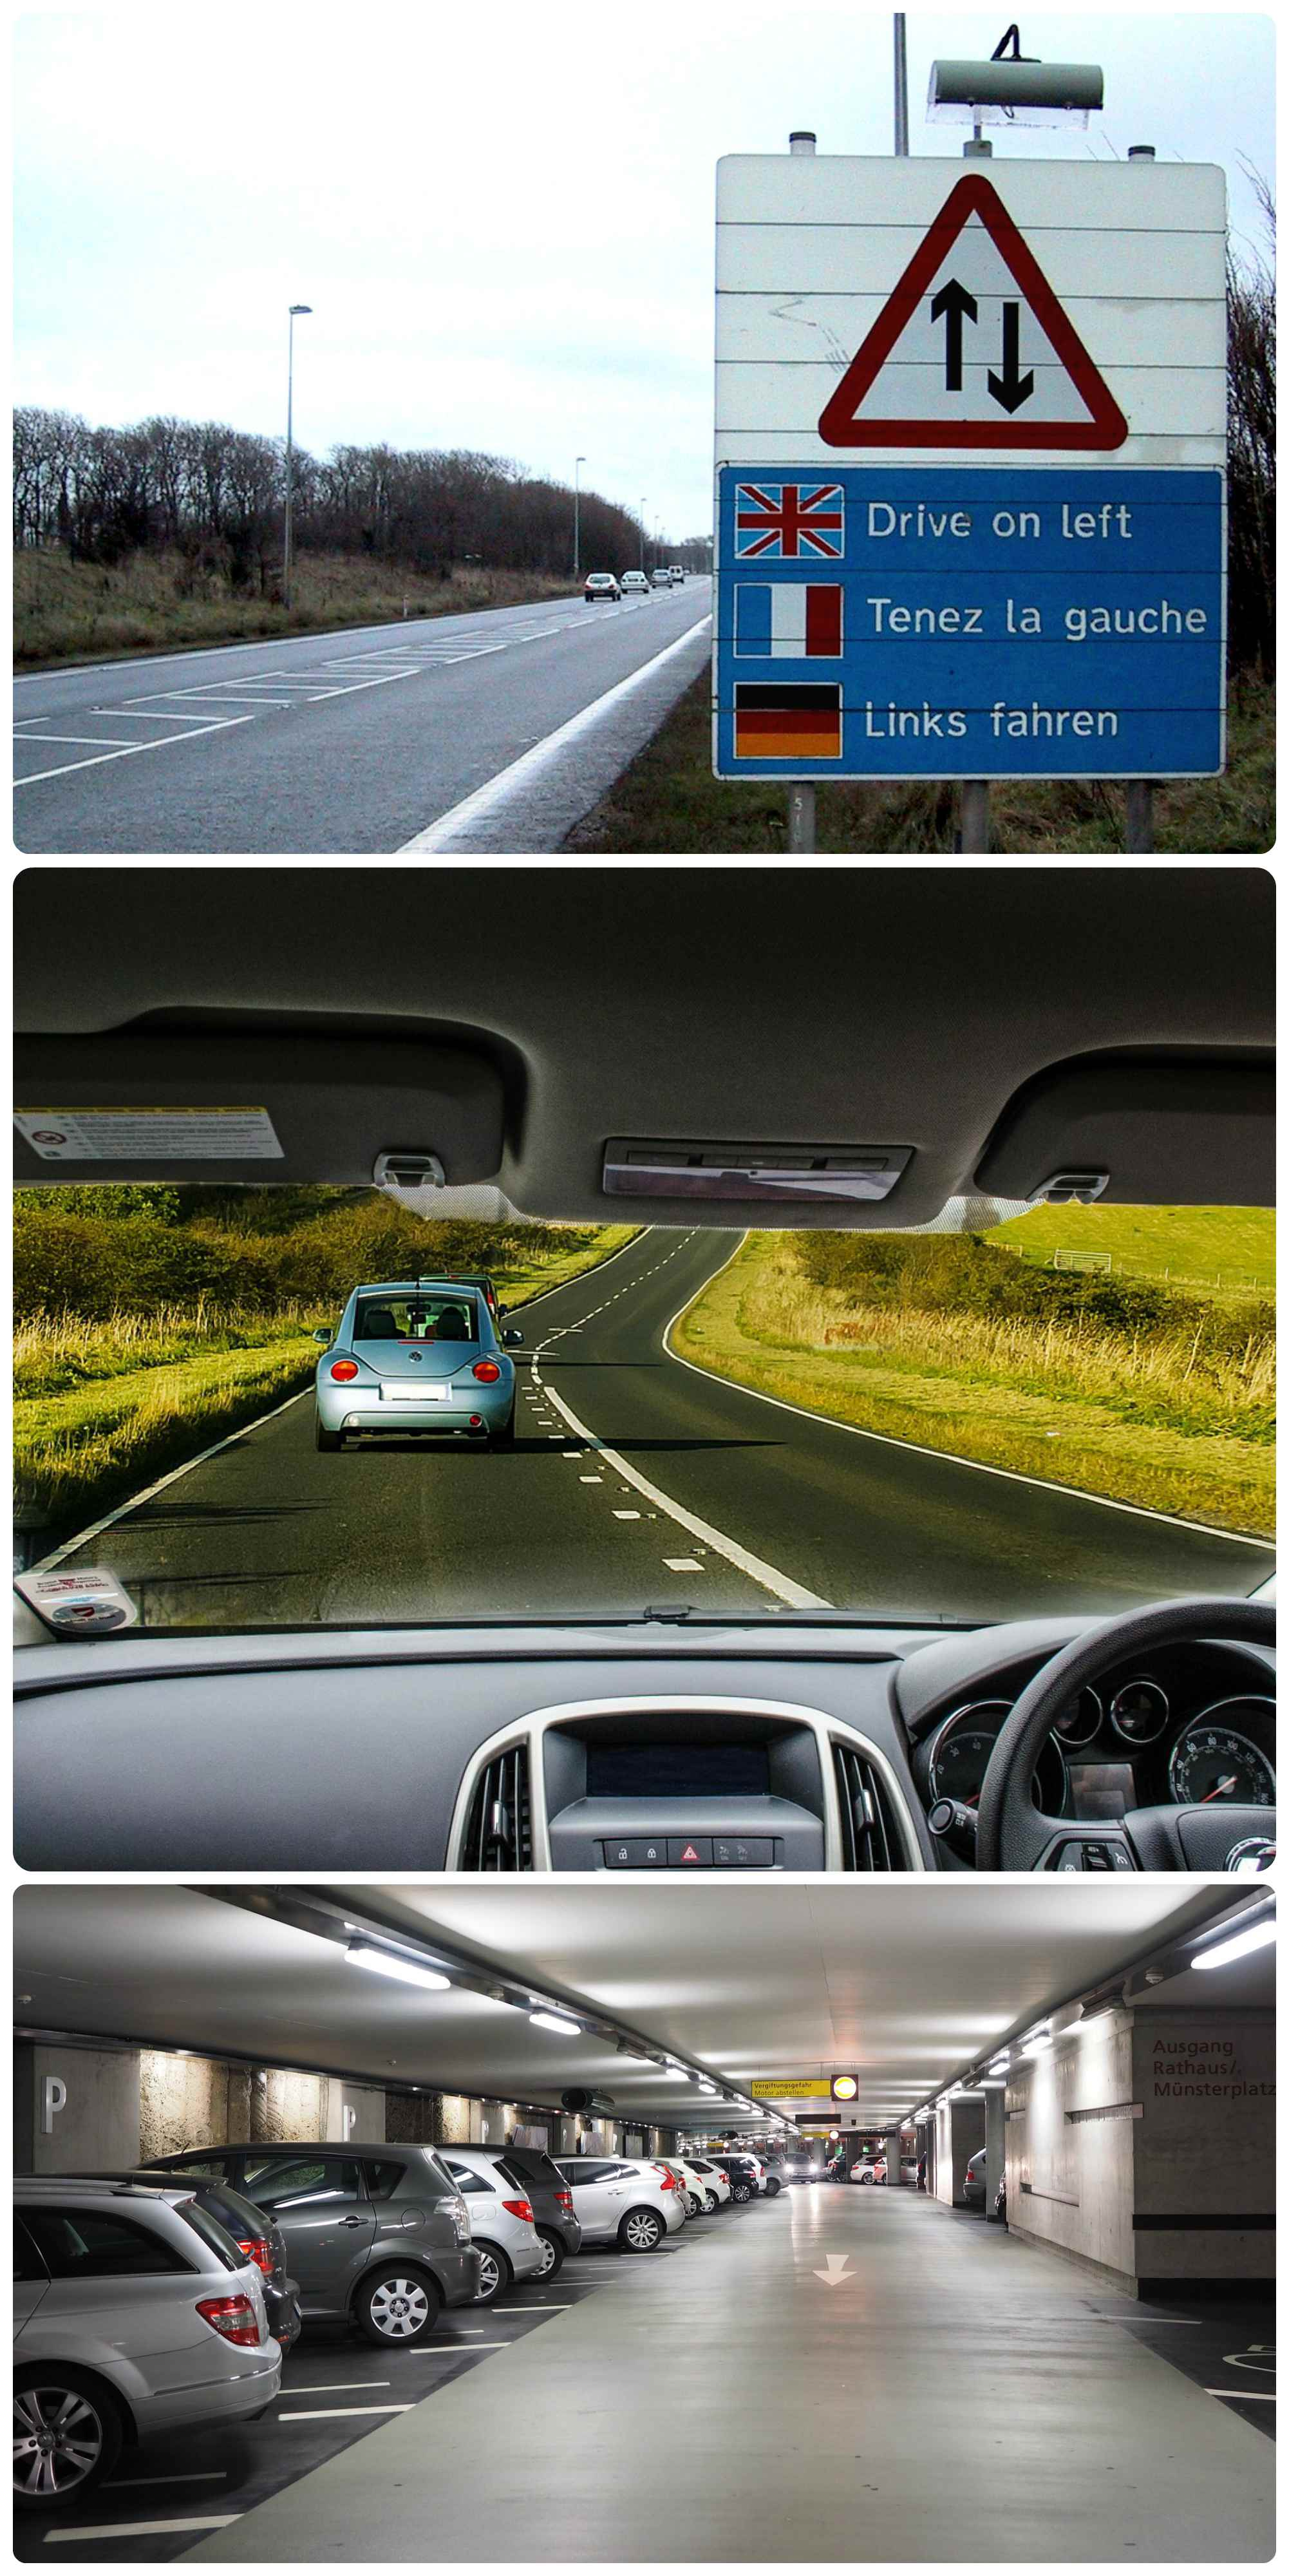 screw_the_average_uk_us_differences_driving.jpg